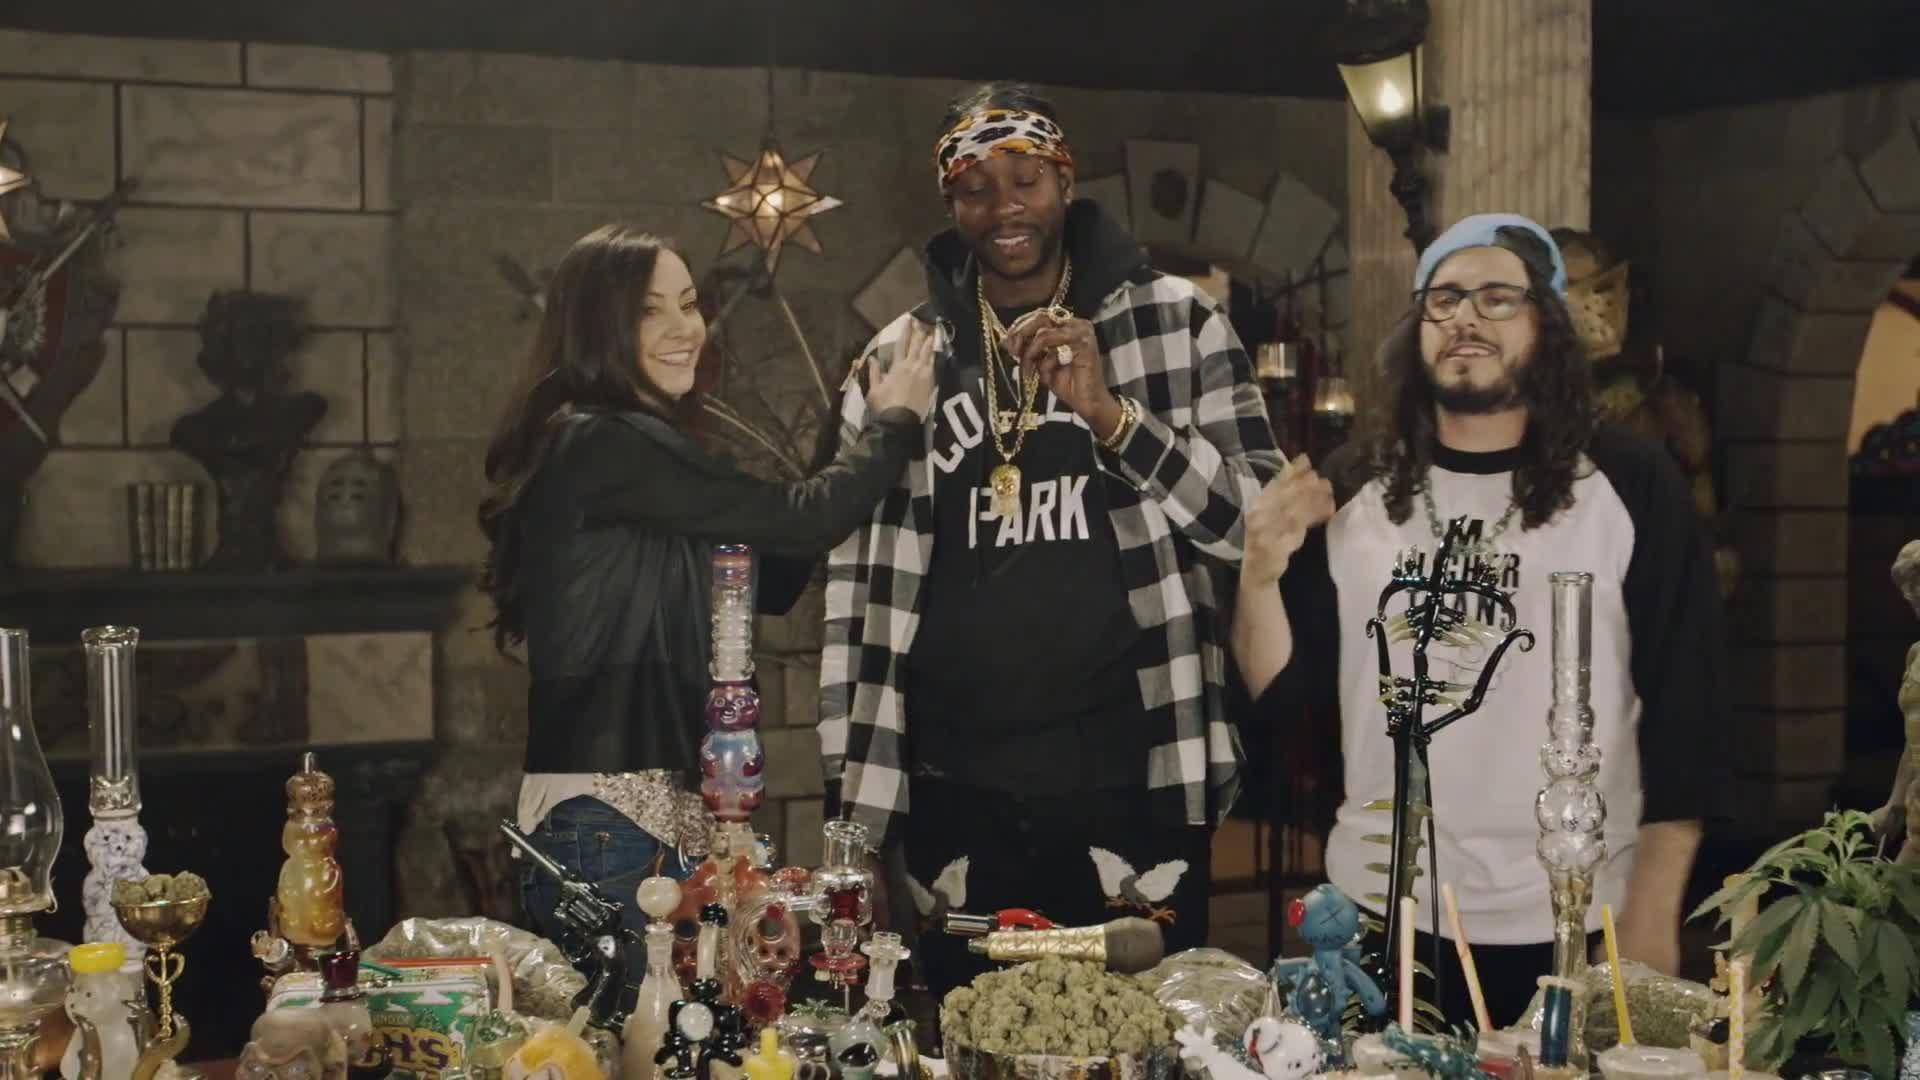 Most Expensivest Shit: 2 Chainz and the 3 Stages of Getting High